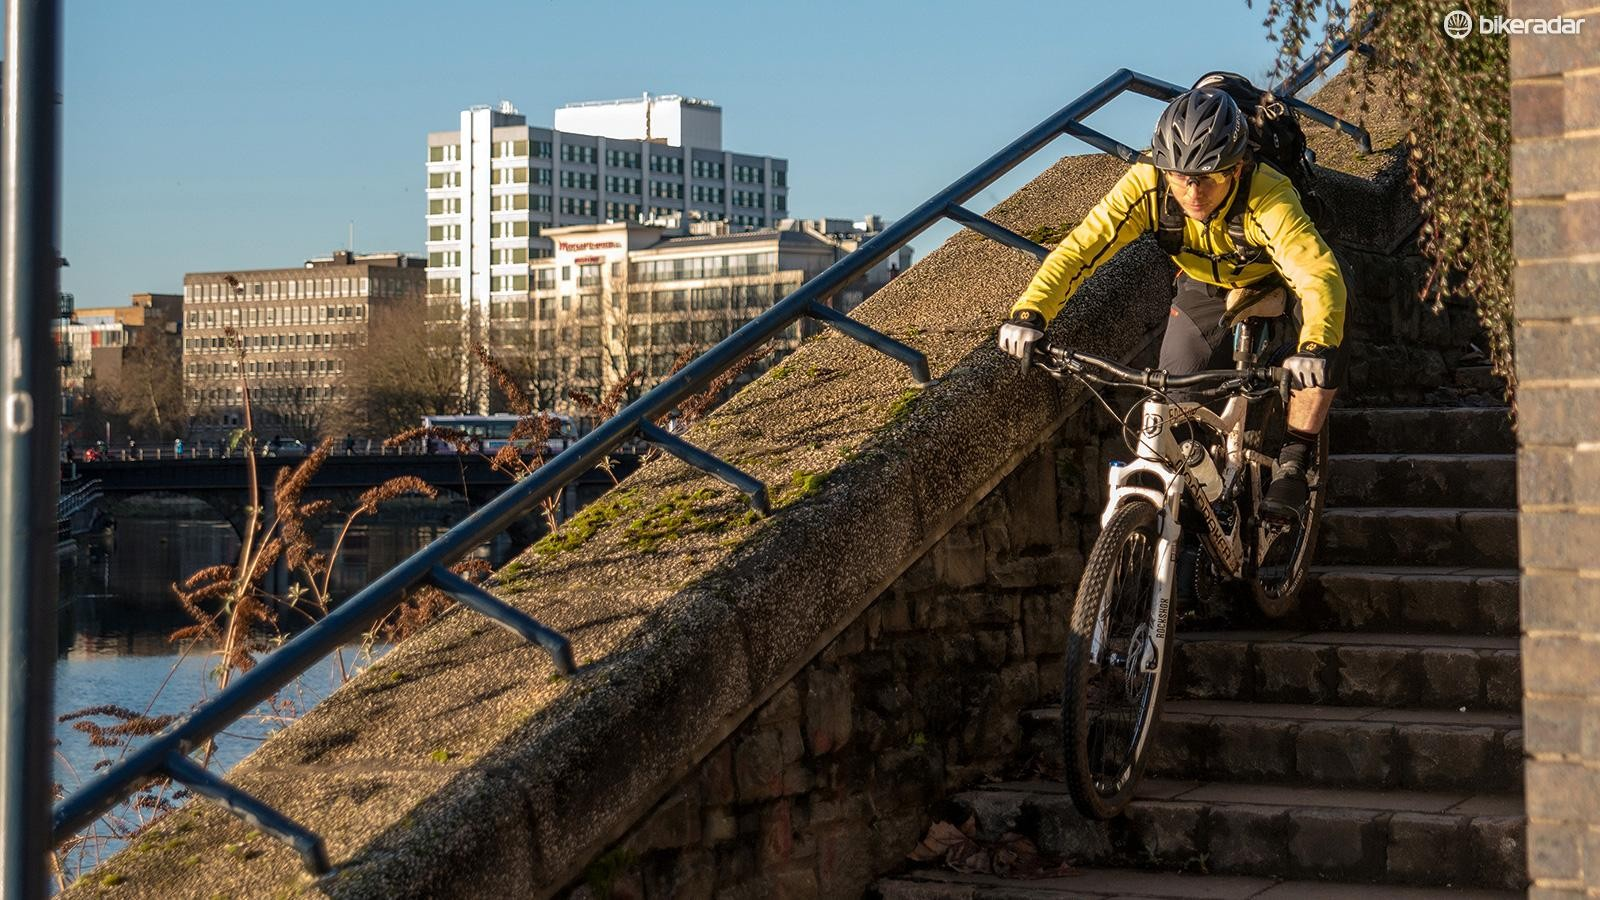 Make like Danny MacAskill and think of your commute route as parkour for bicycles!